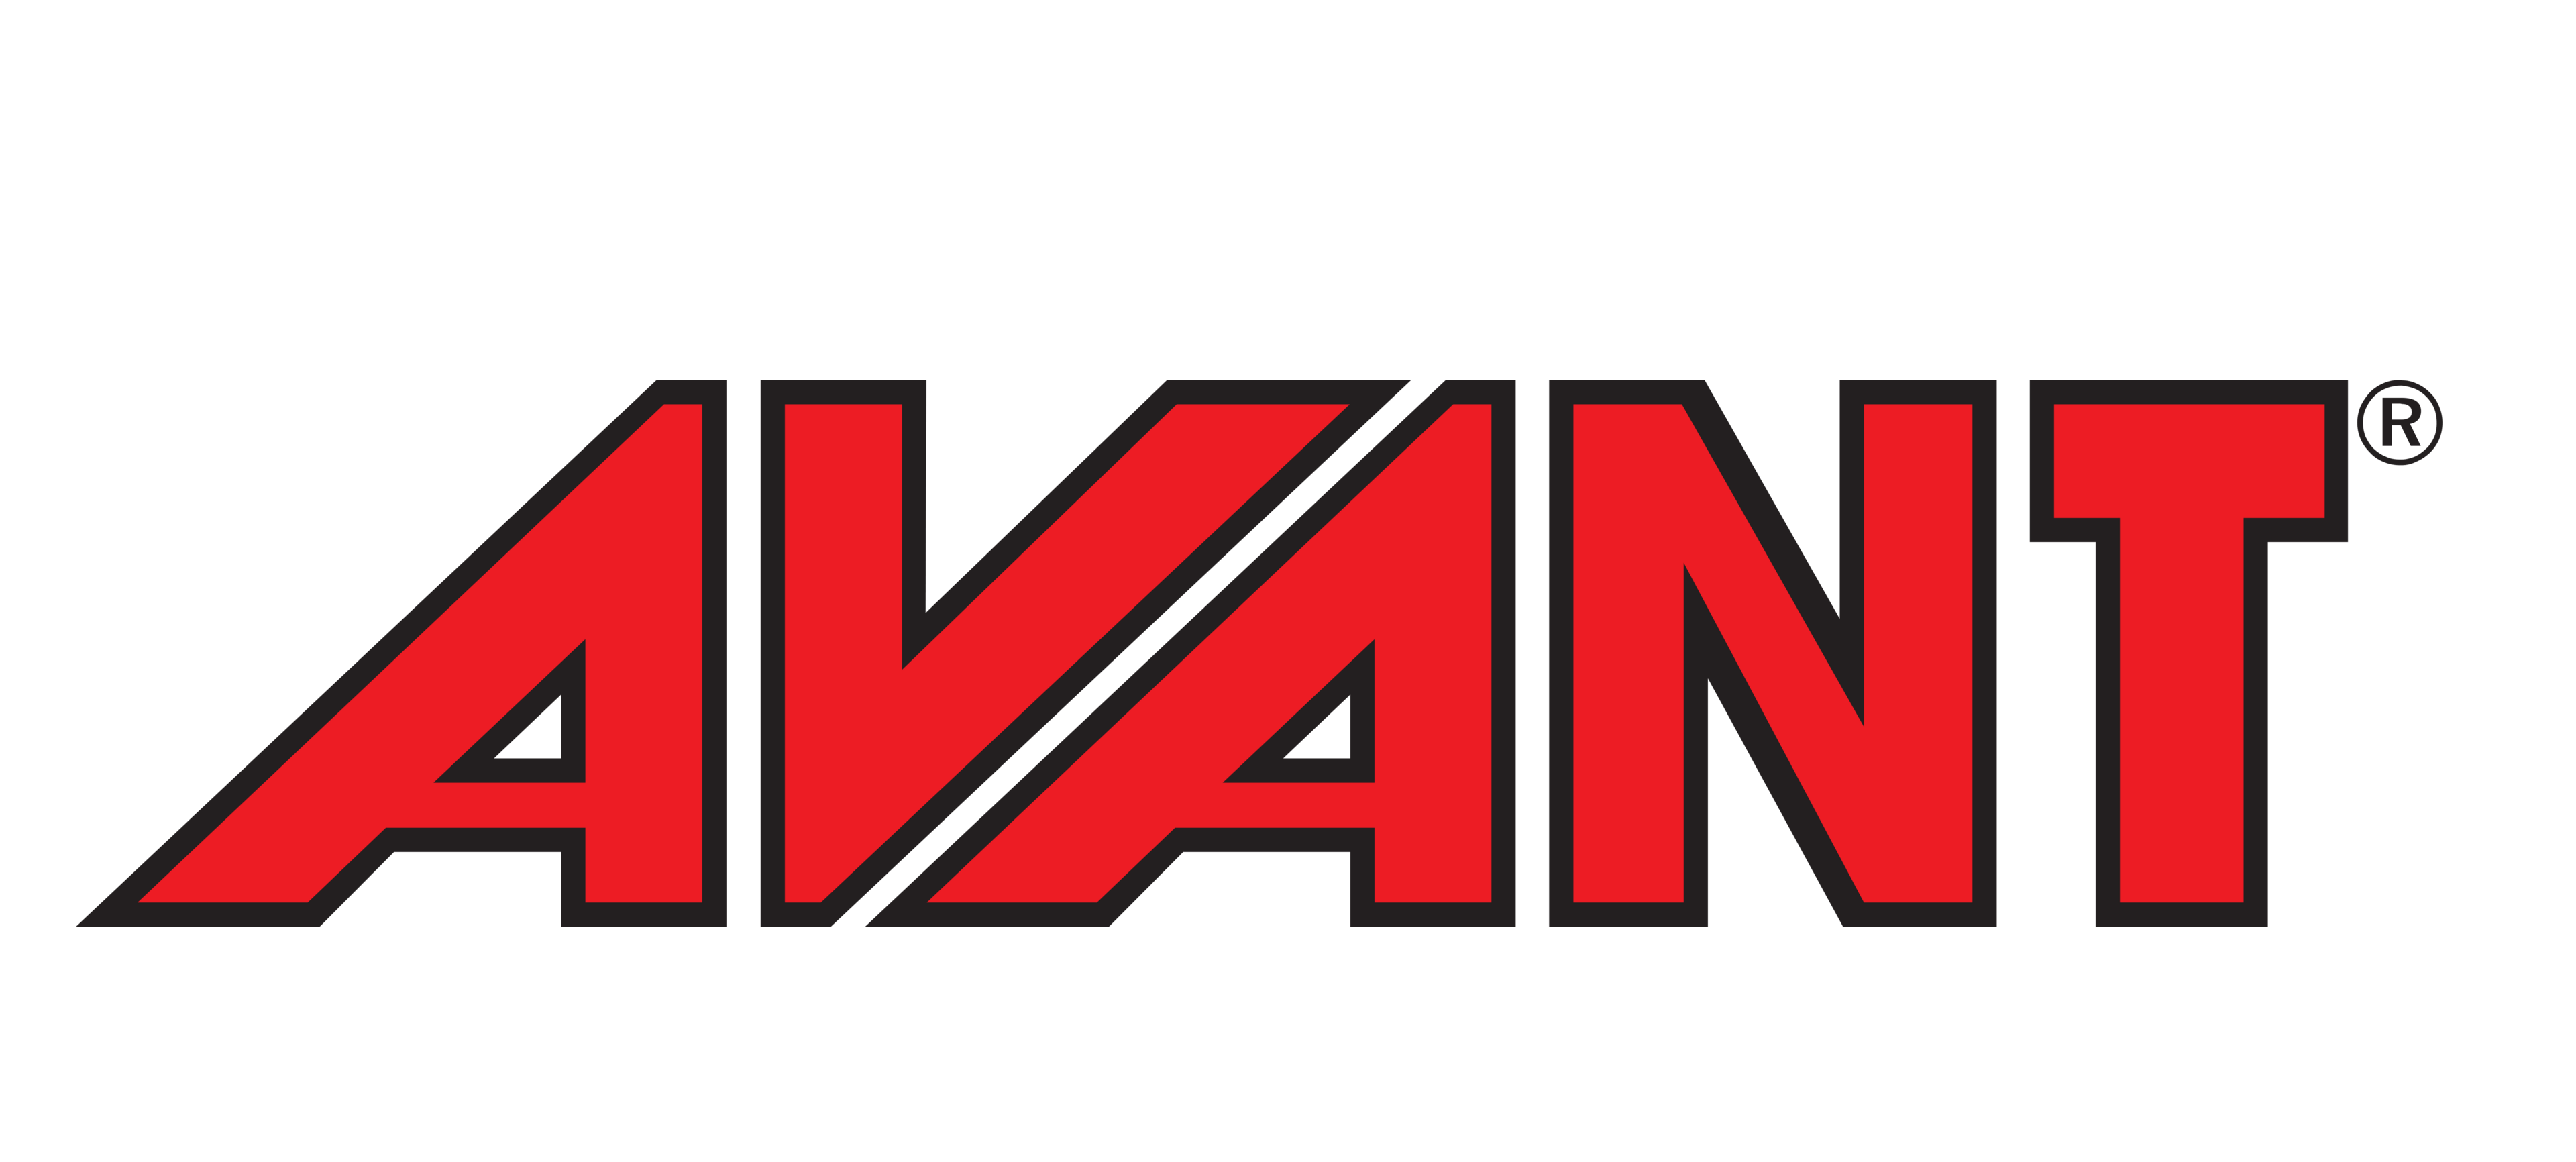 Company logo for 'Avant'.